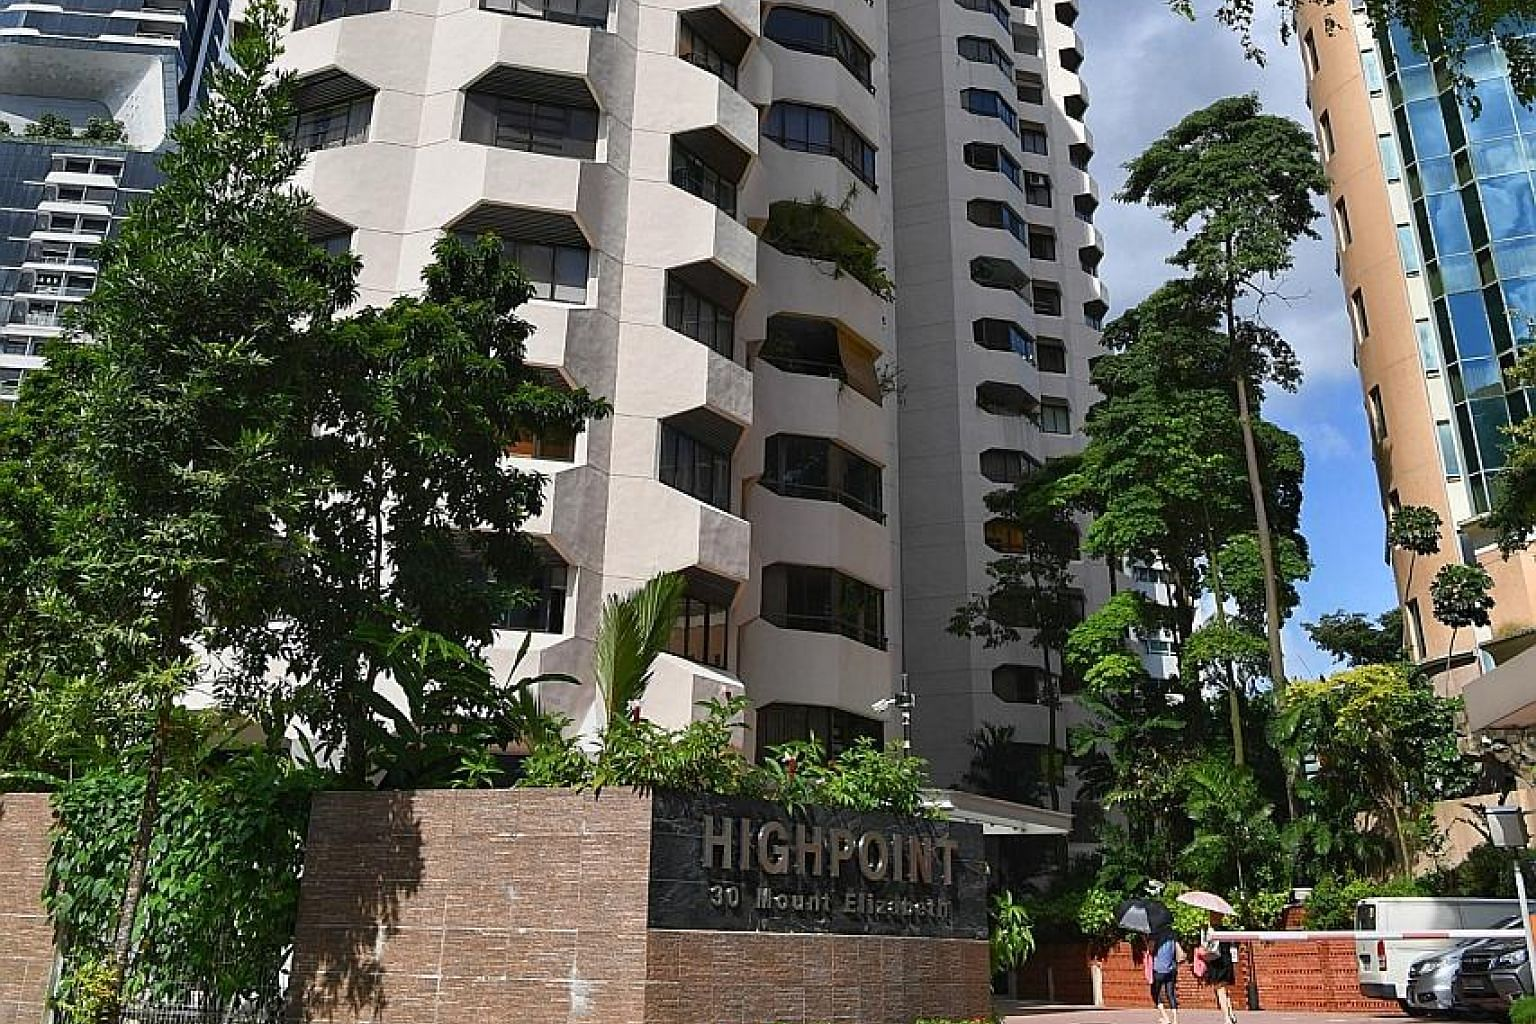 The HighPoint condo block, housing 57 apartments and two penthouses, is in Mount Elizabeth Road.